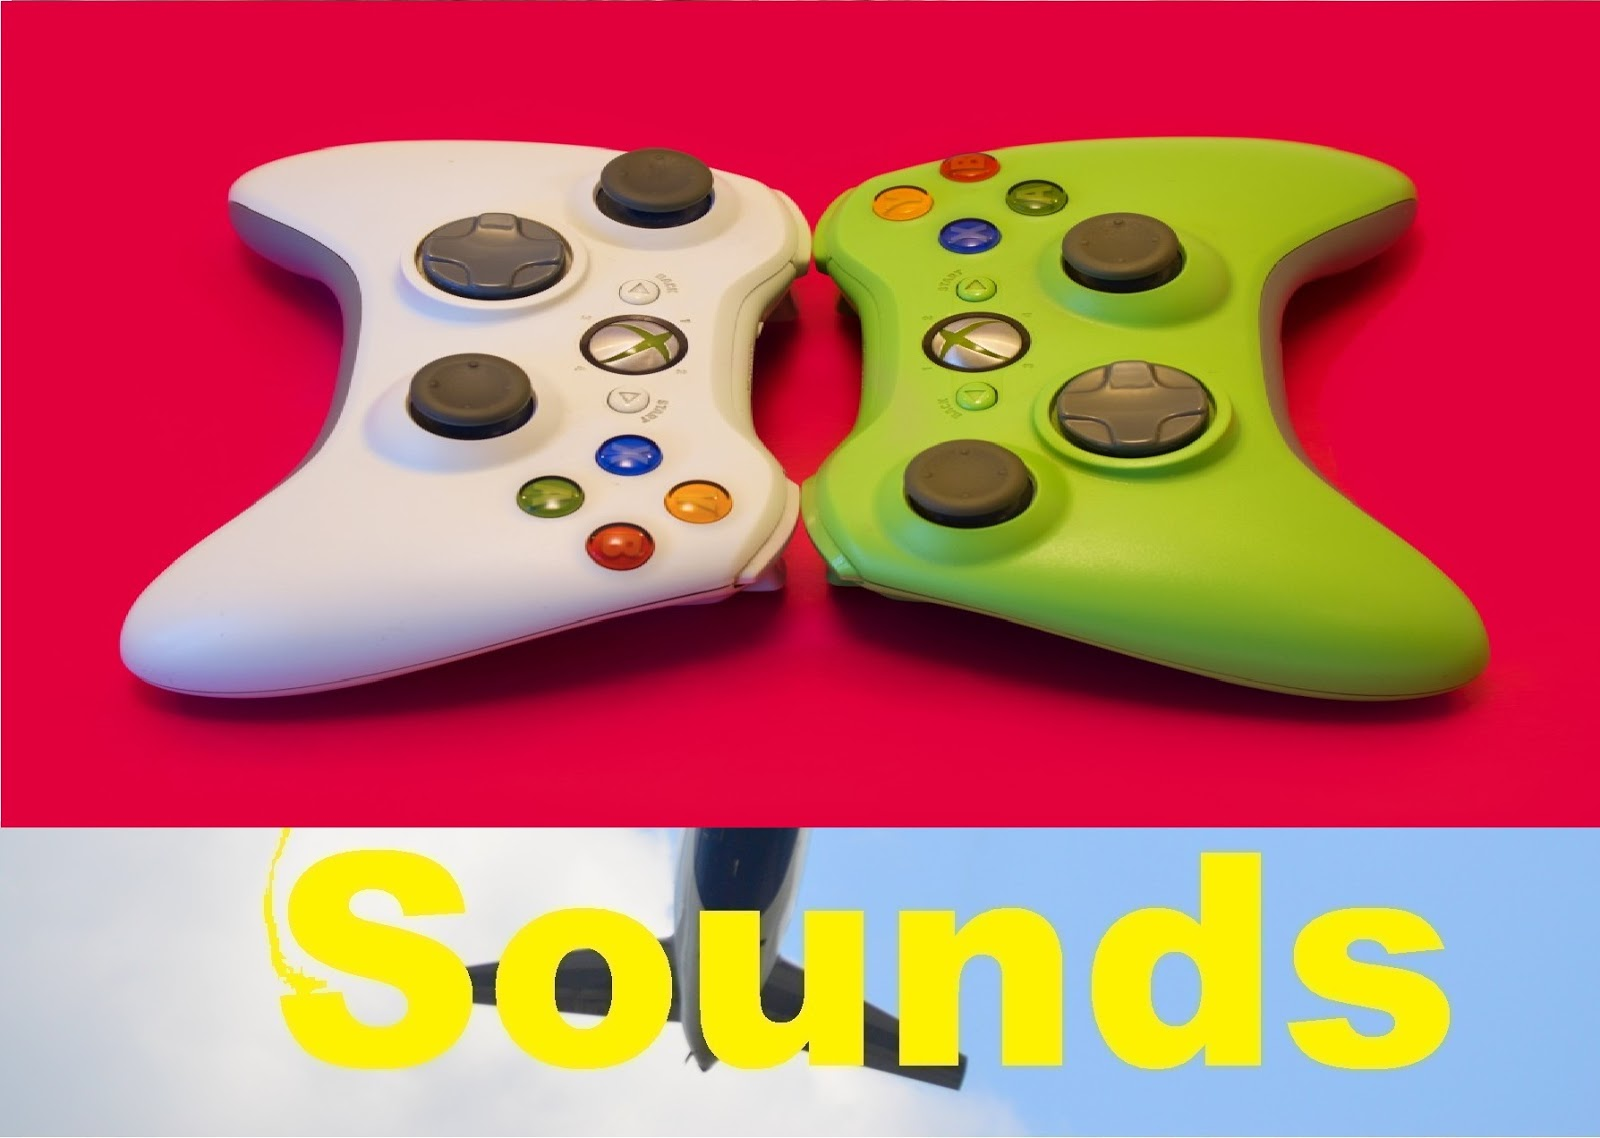 All Sound Effects: Gaming sound effect